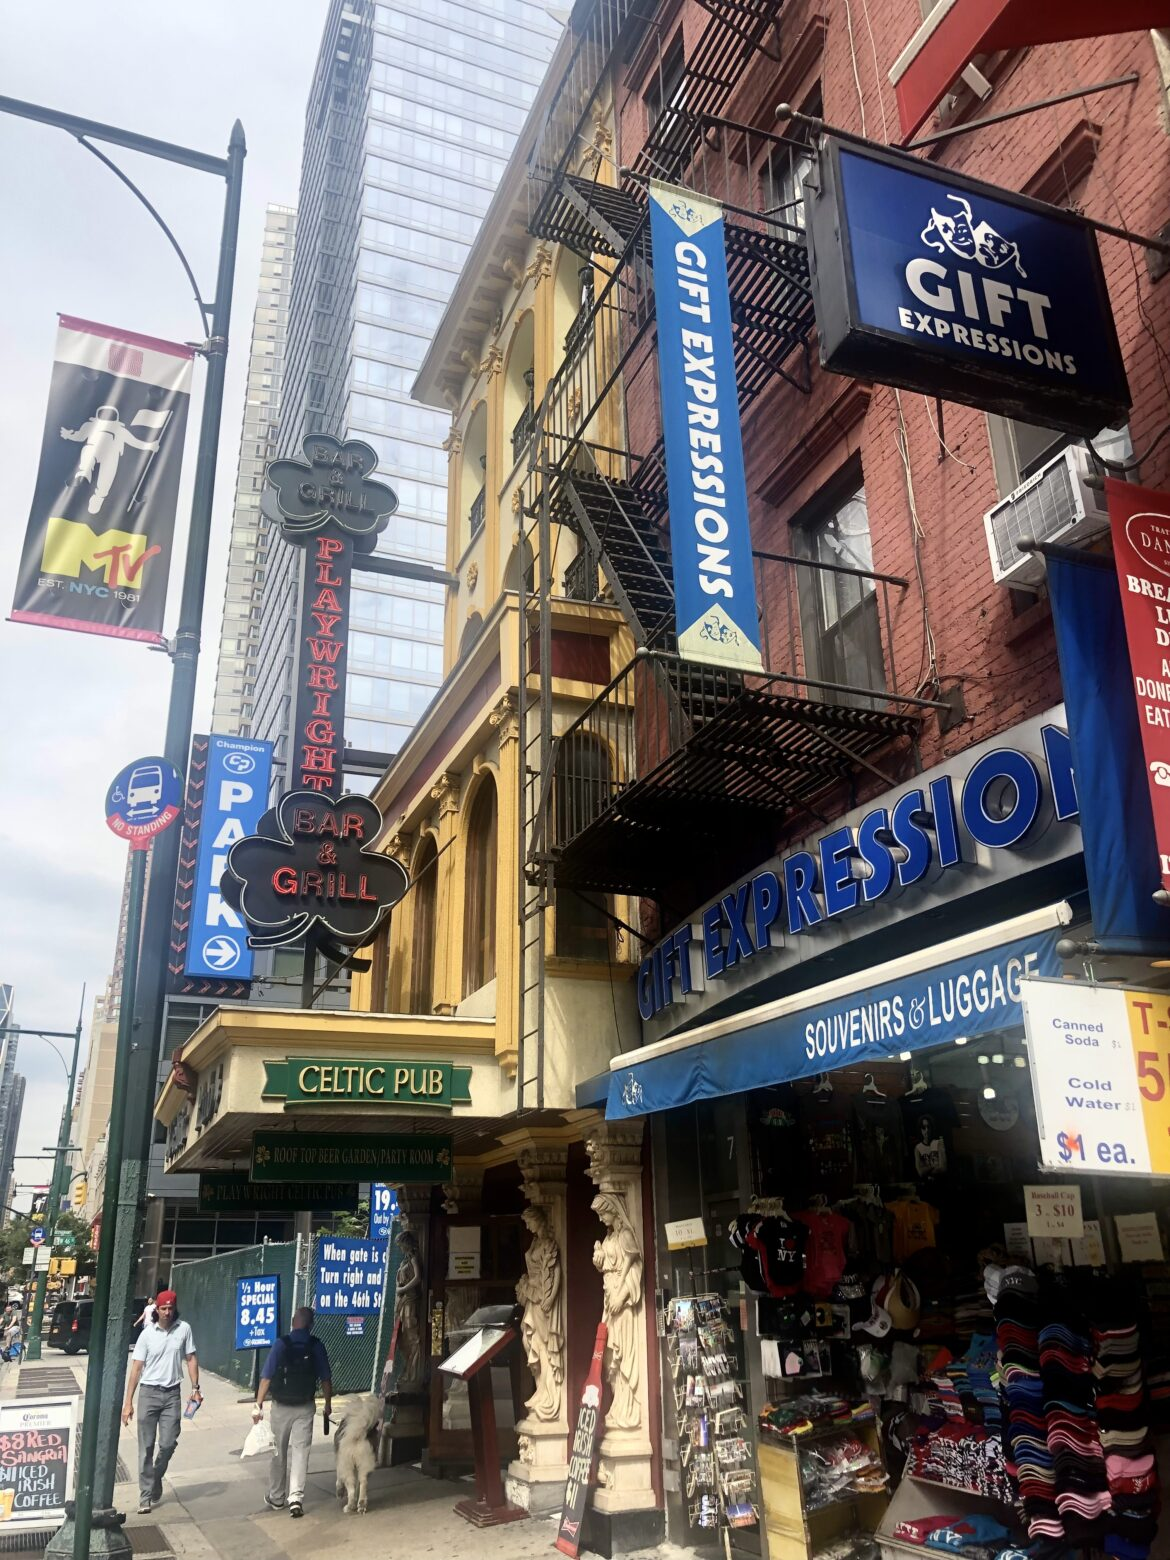 Property buys give developer control of entire Eighth Avenue blockfront